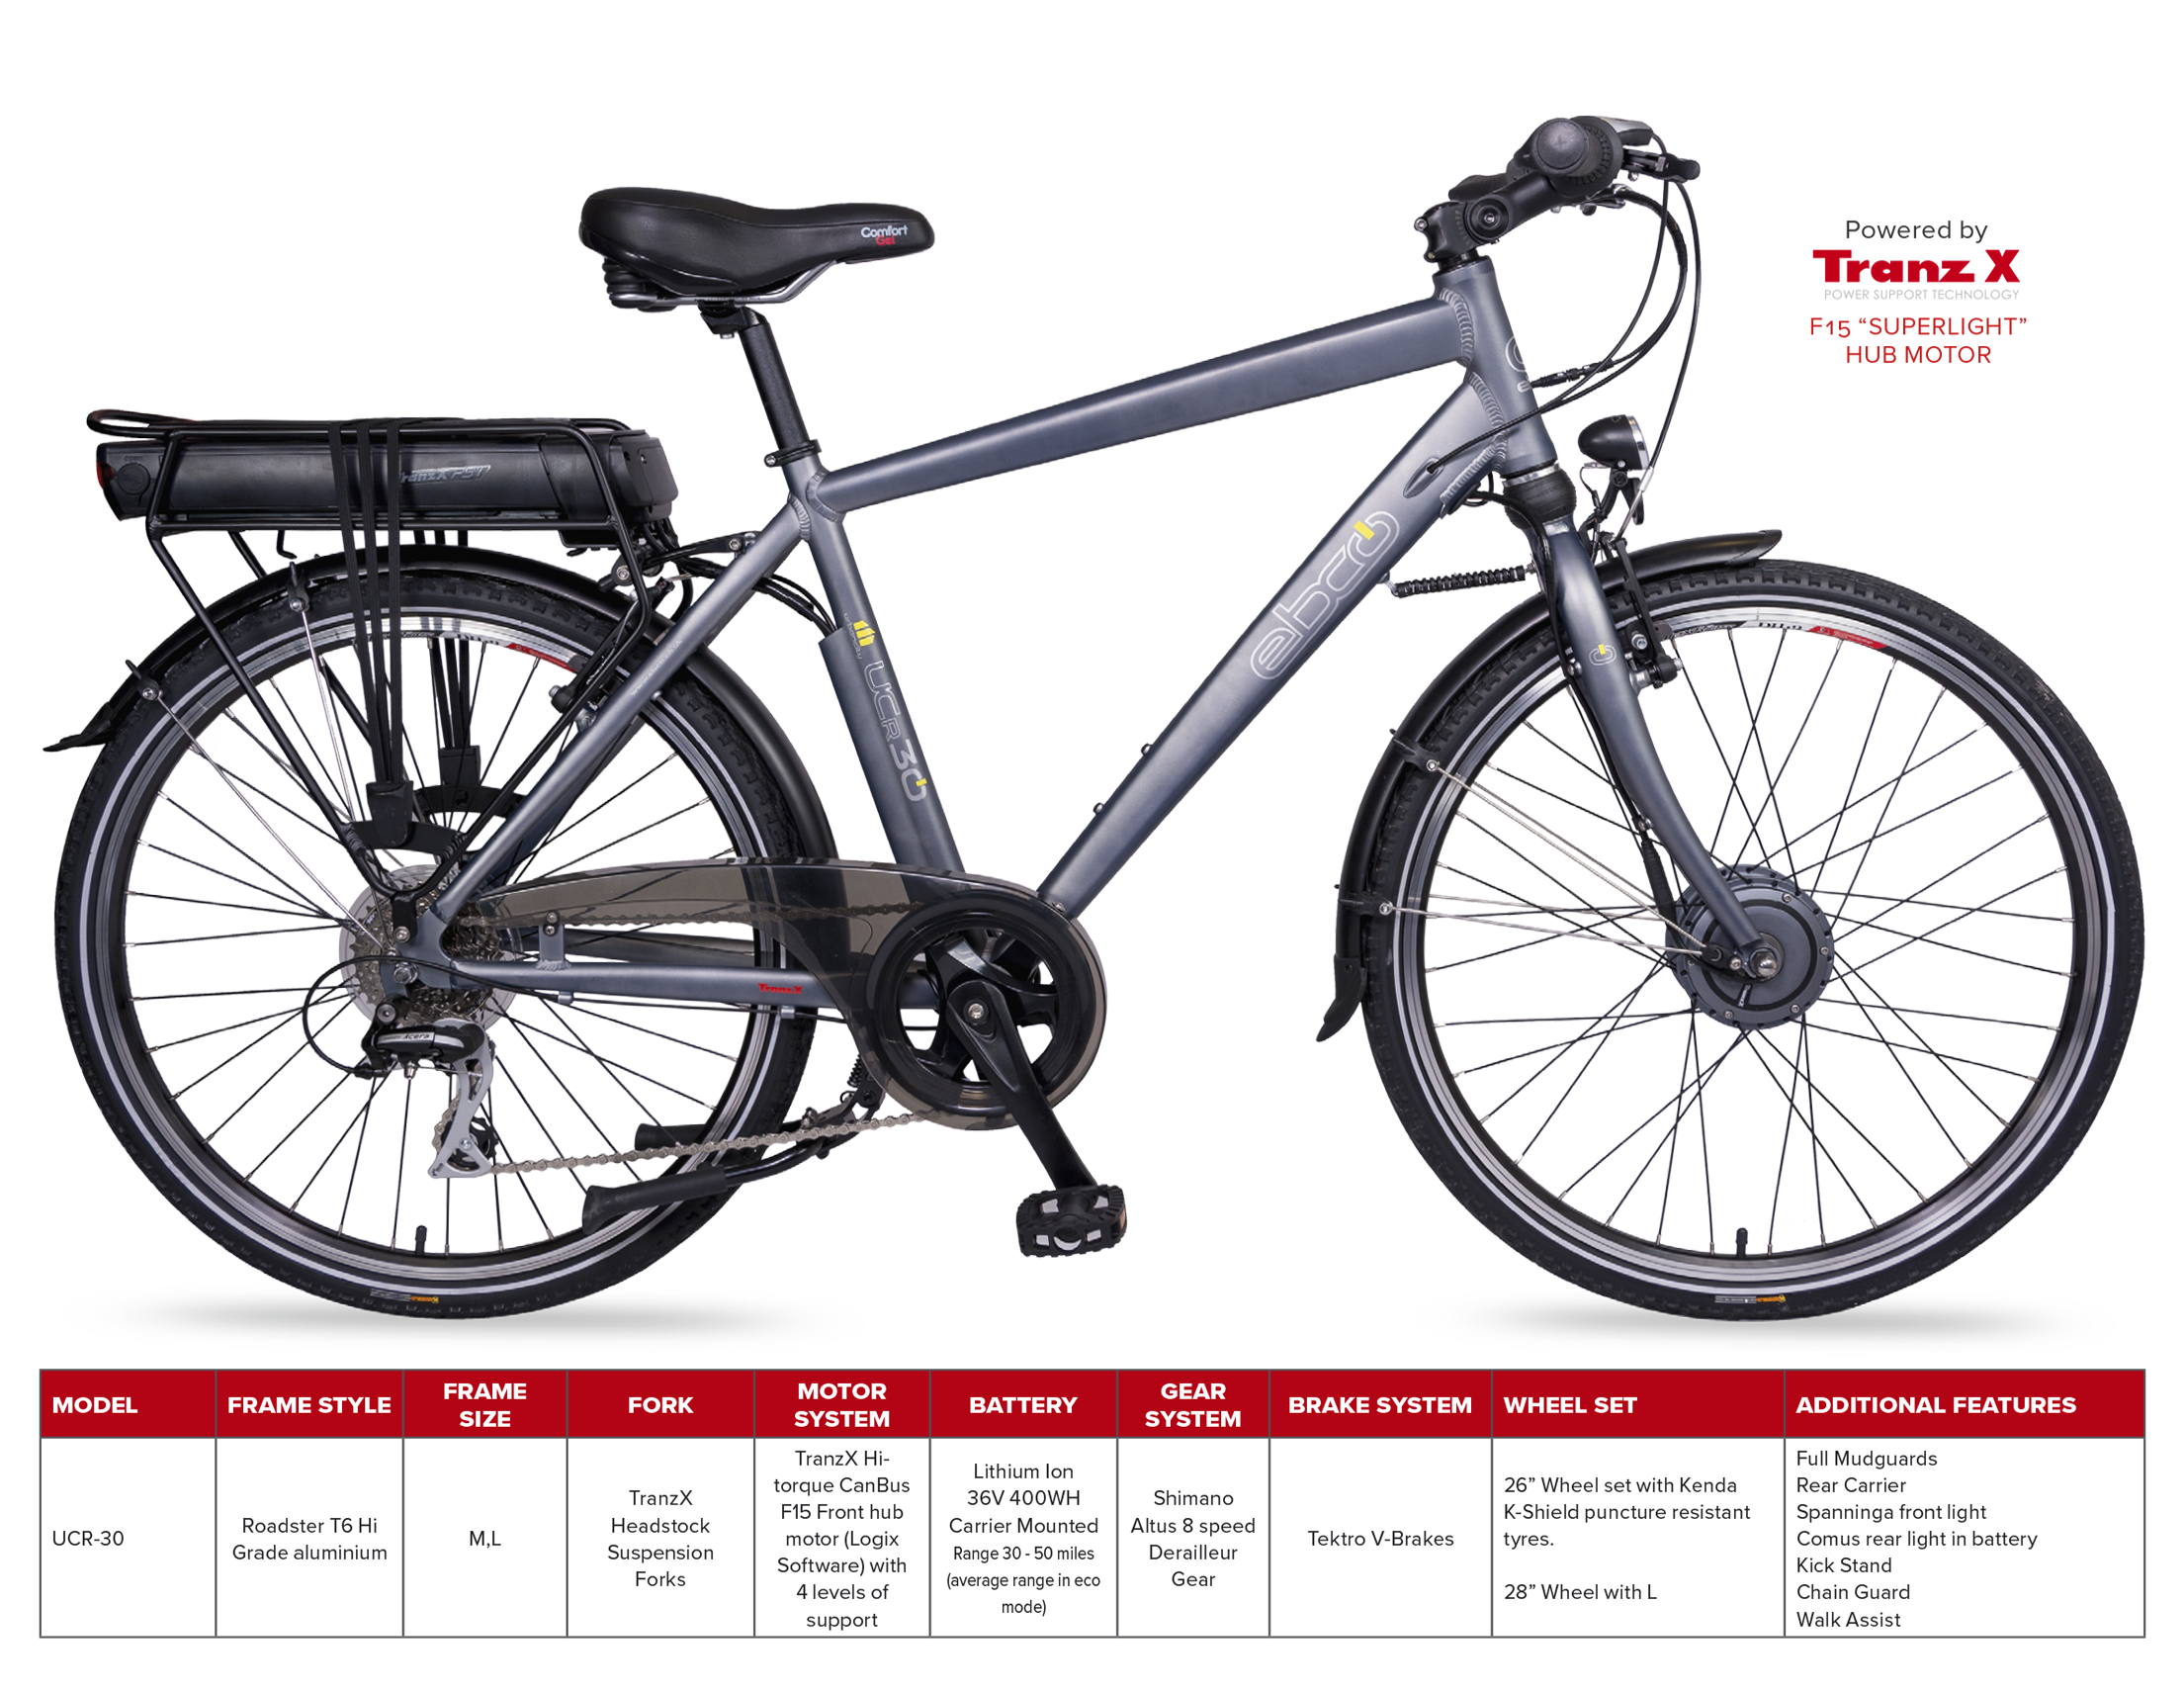 EBCO UCR30 Electric Bike